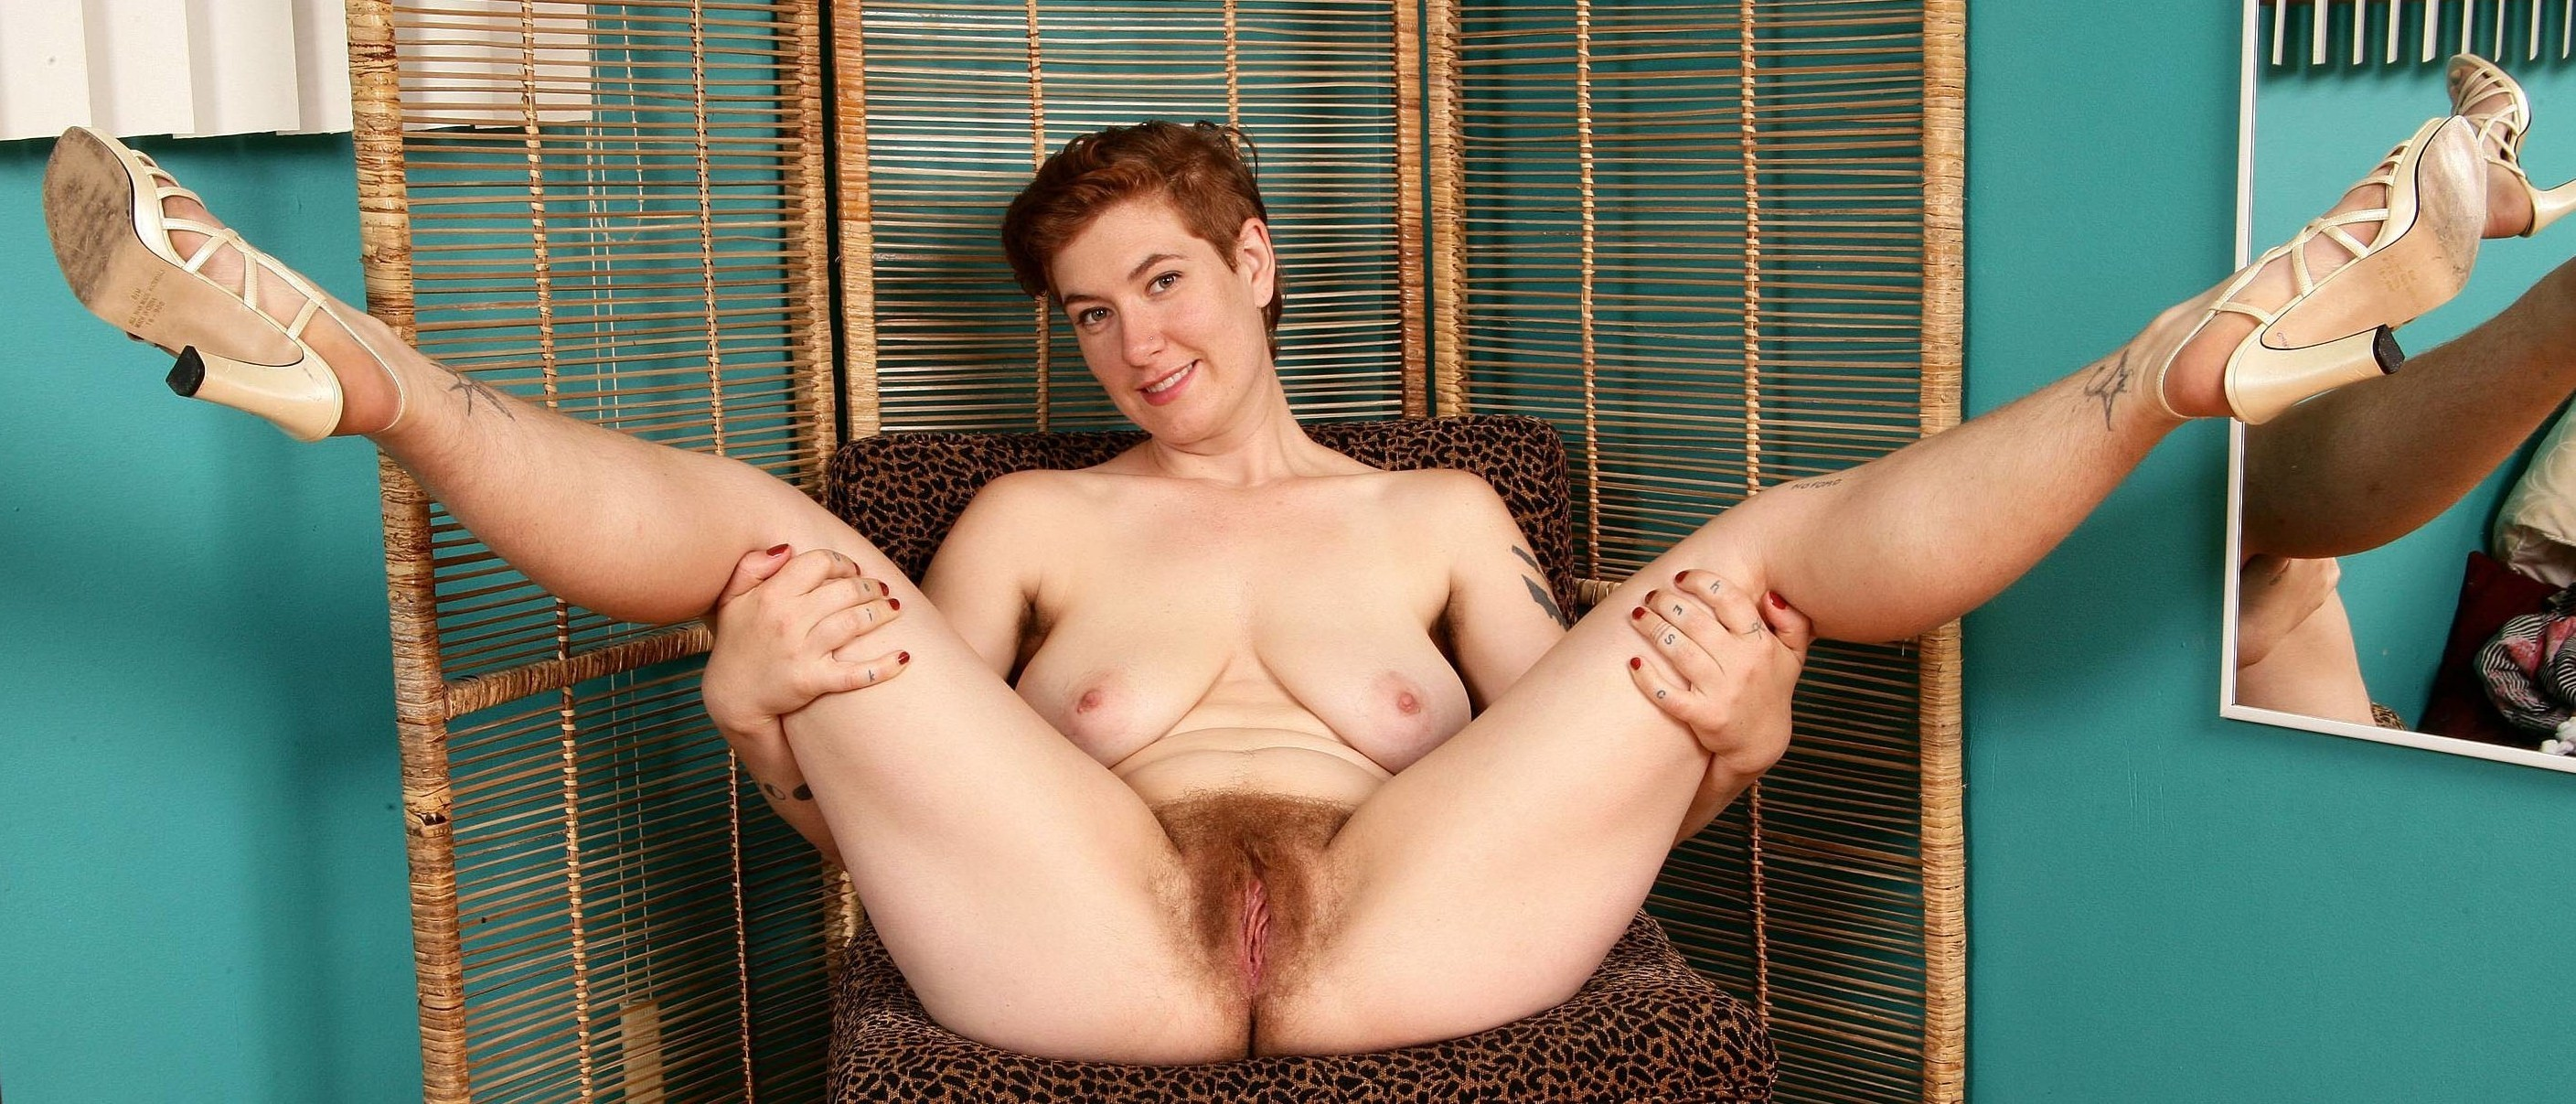 brown-getting-free-pussy-video-hairy-spreadeagle-cowgirl-making-love